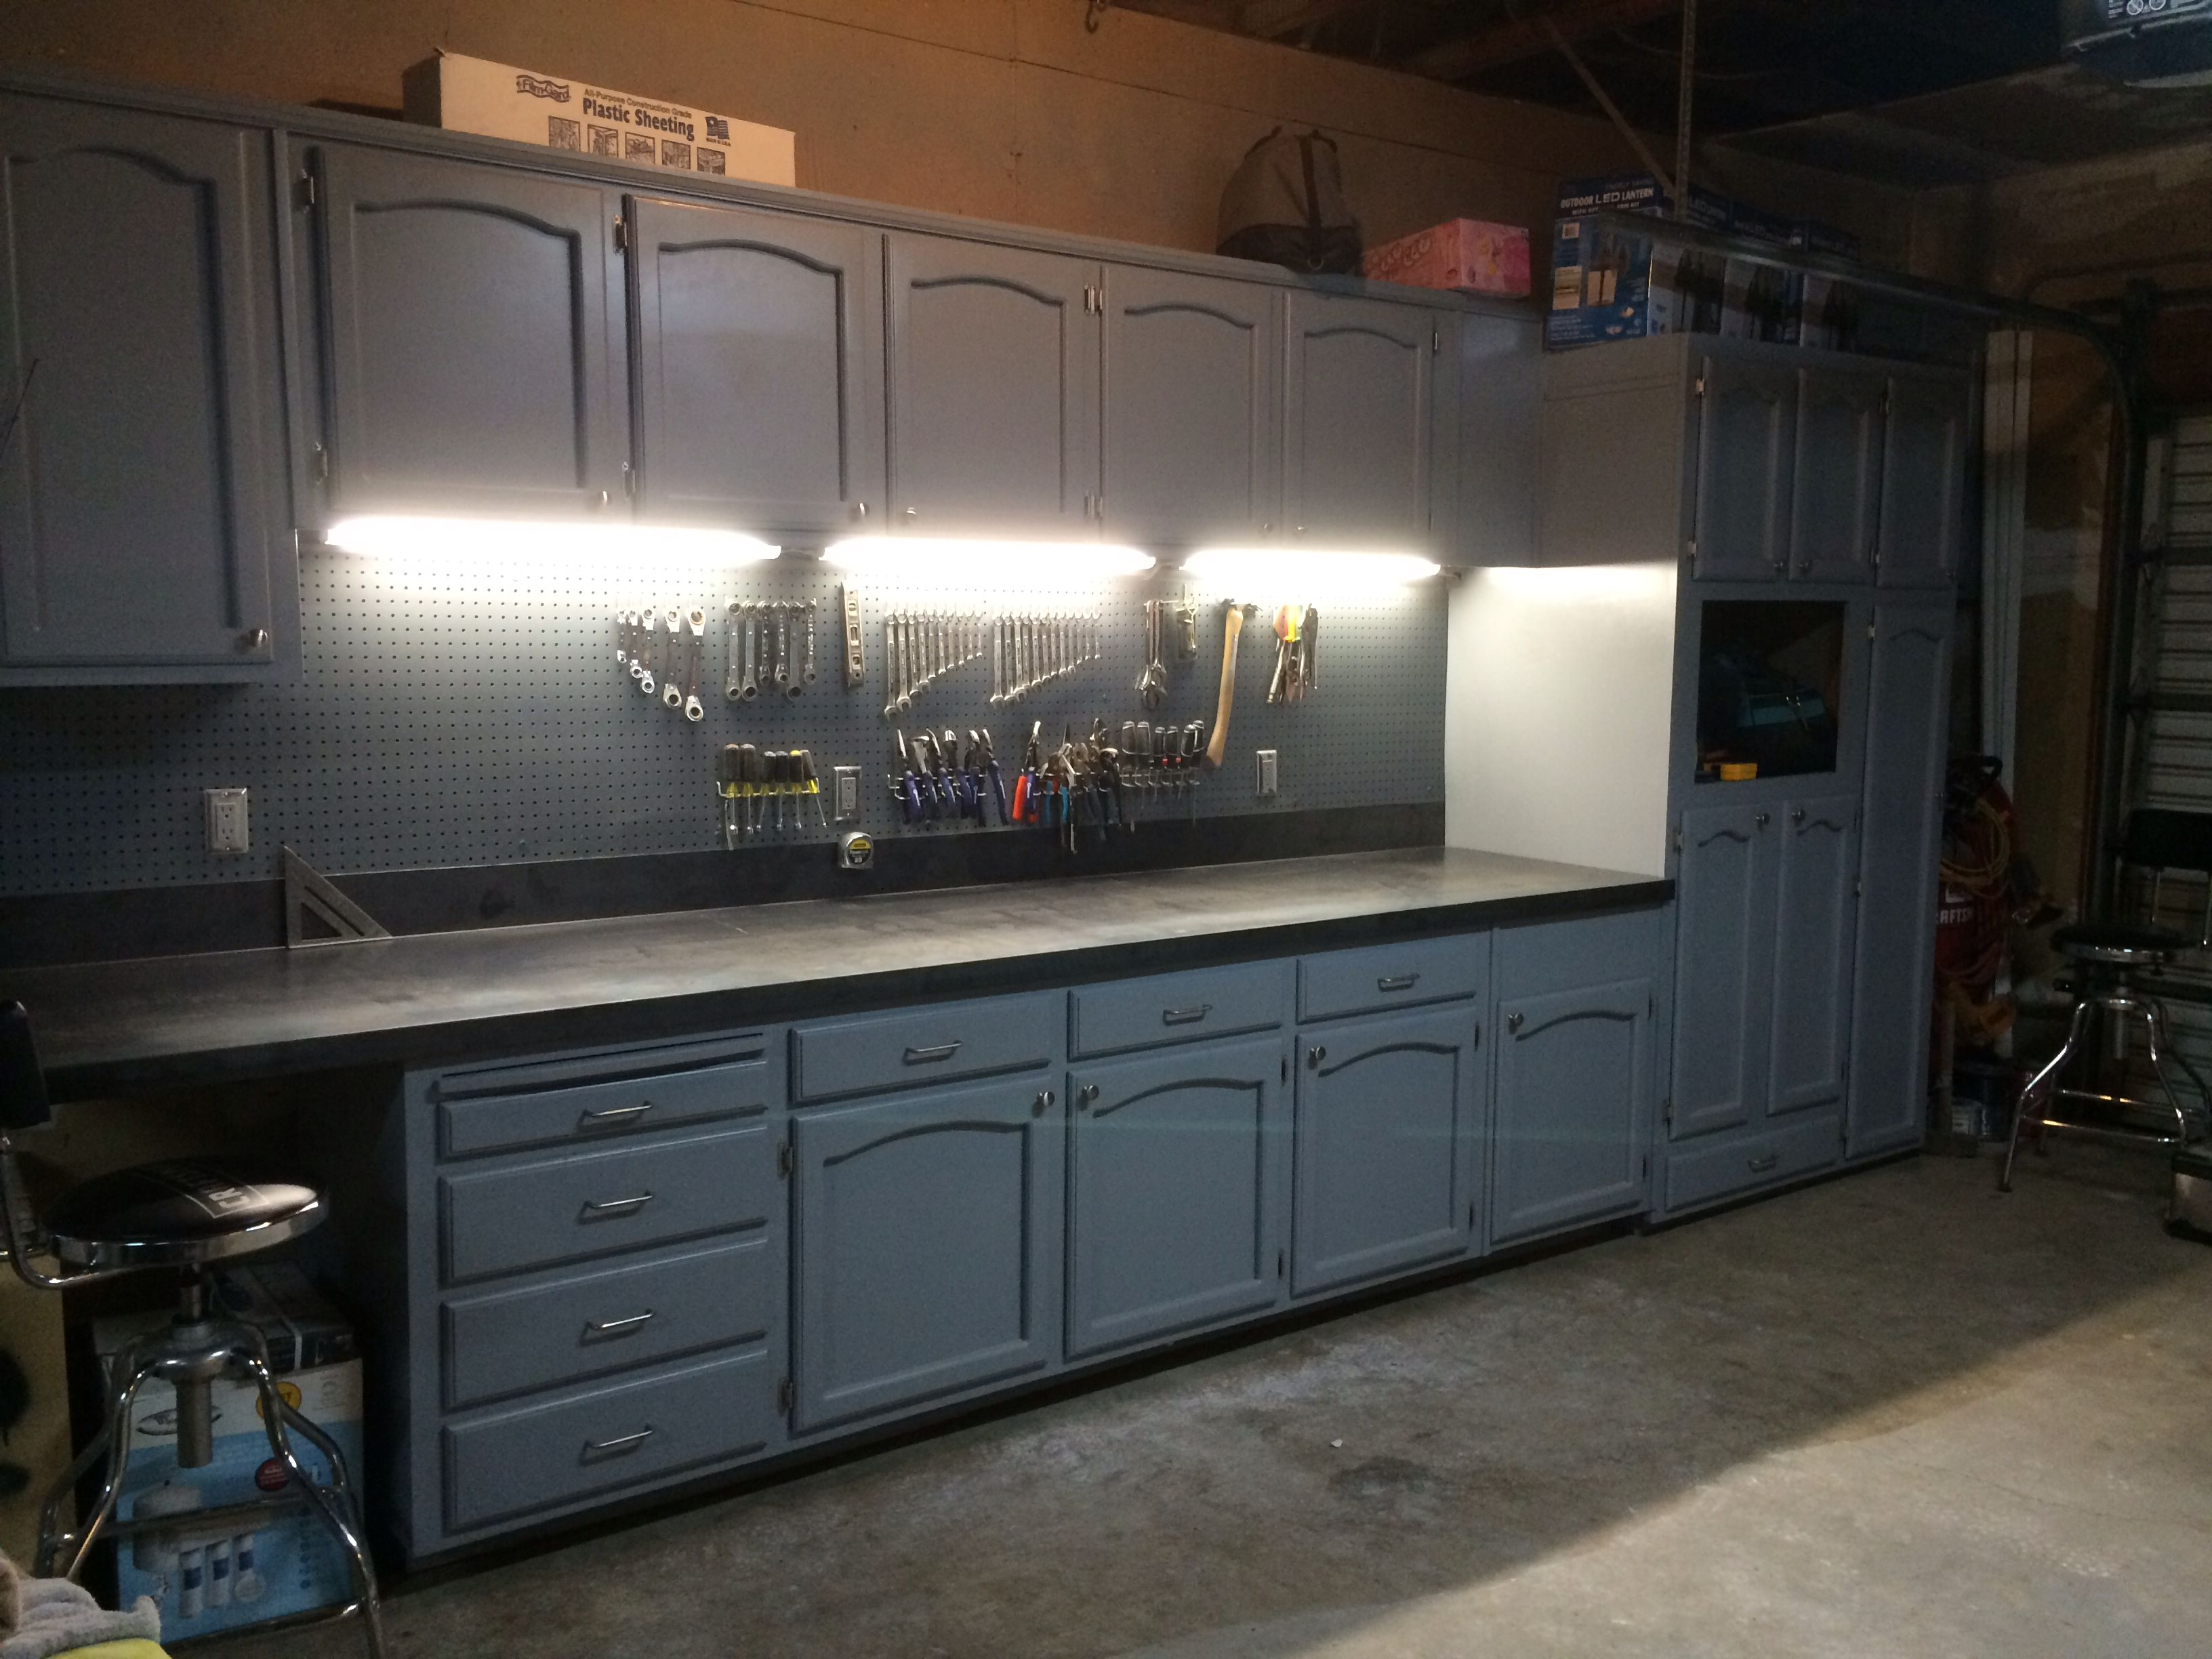 Refurbish Kitchen Cabinets Refurbished Kitchen Cabinets For The Ultimate Work Bench Garage